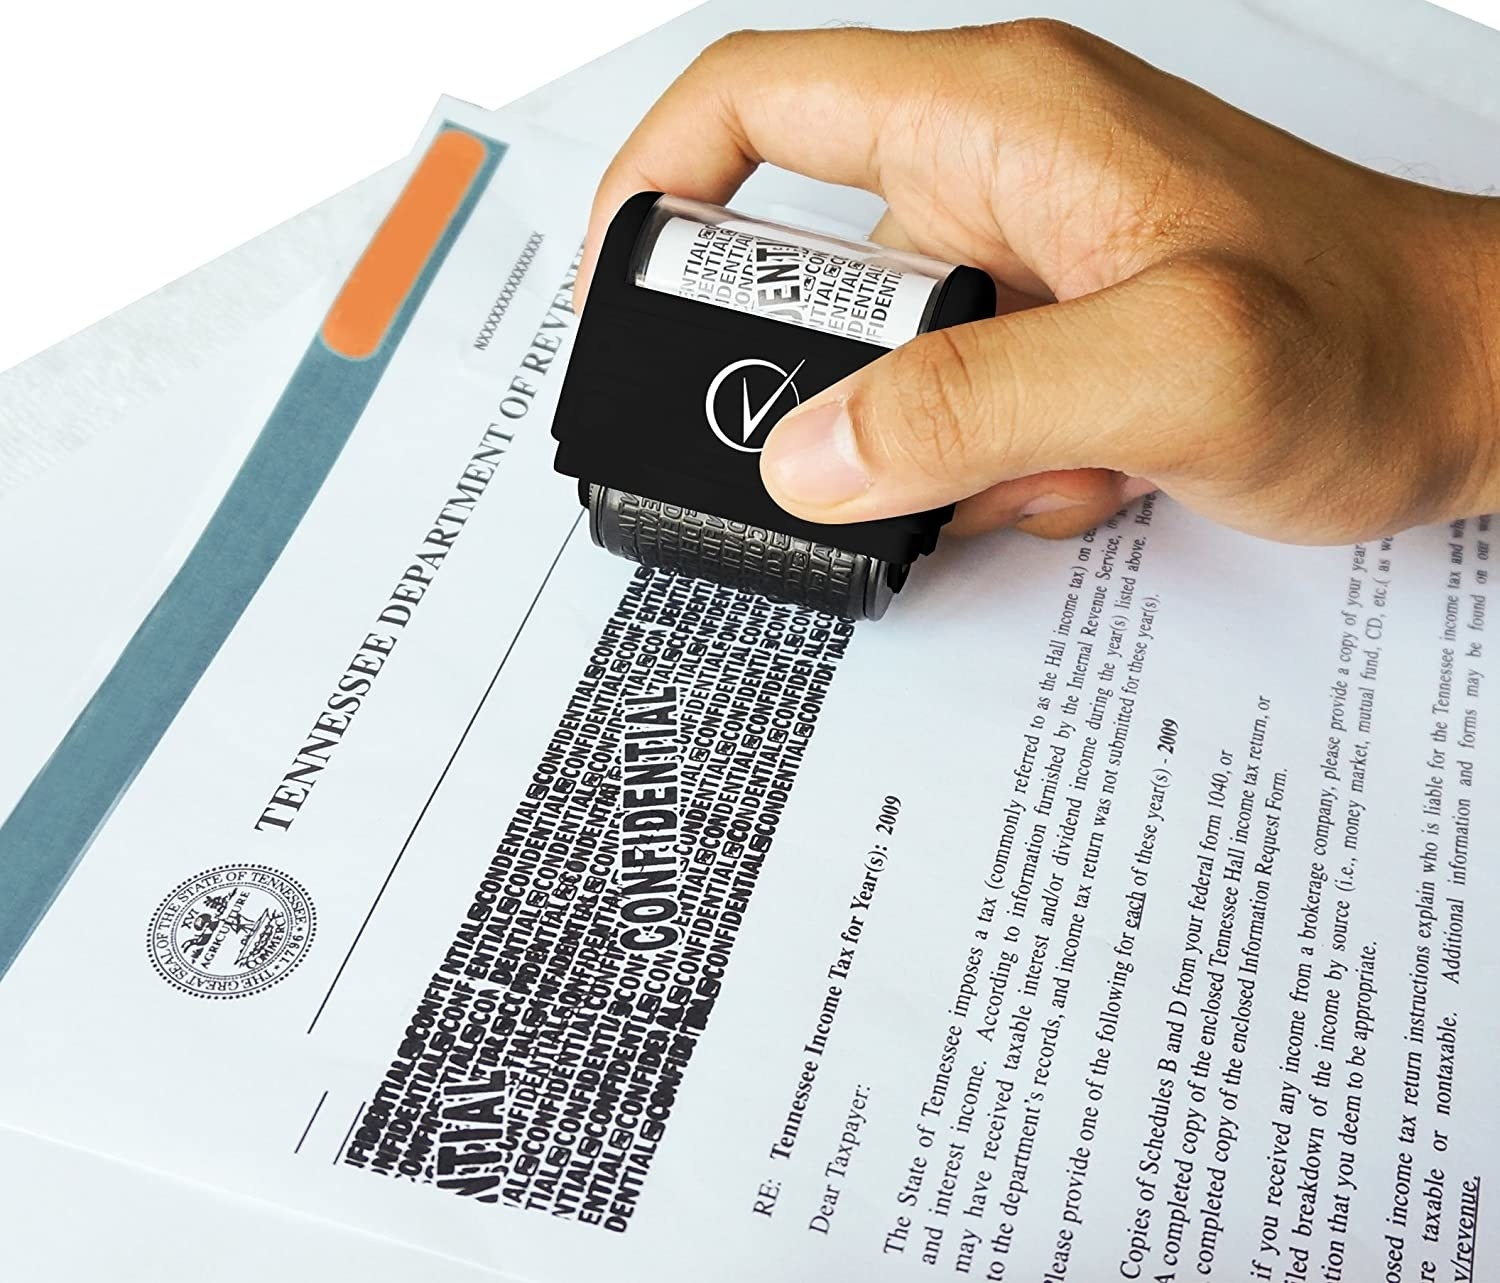 A model using the protection stamp to conceal information on sensitive documents